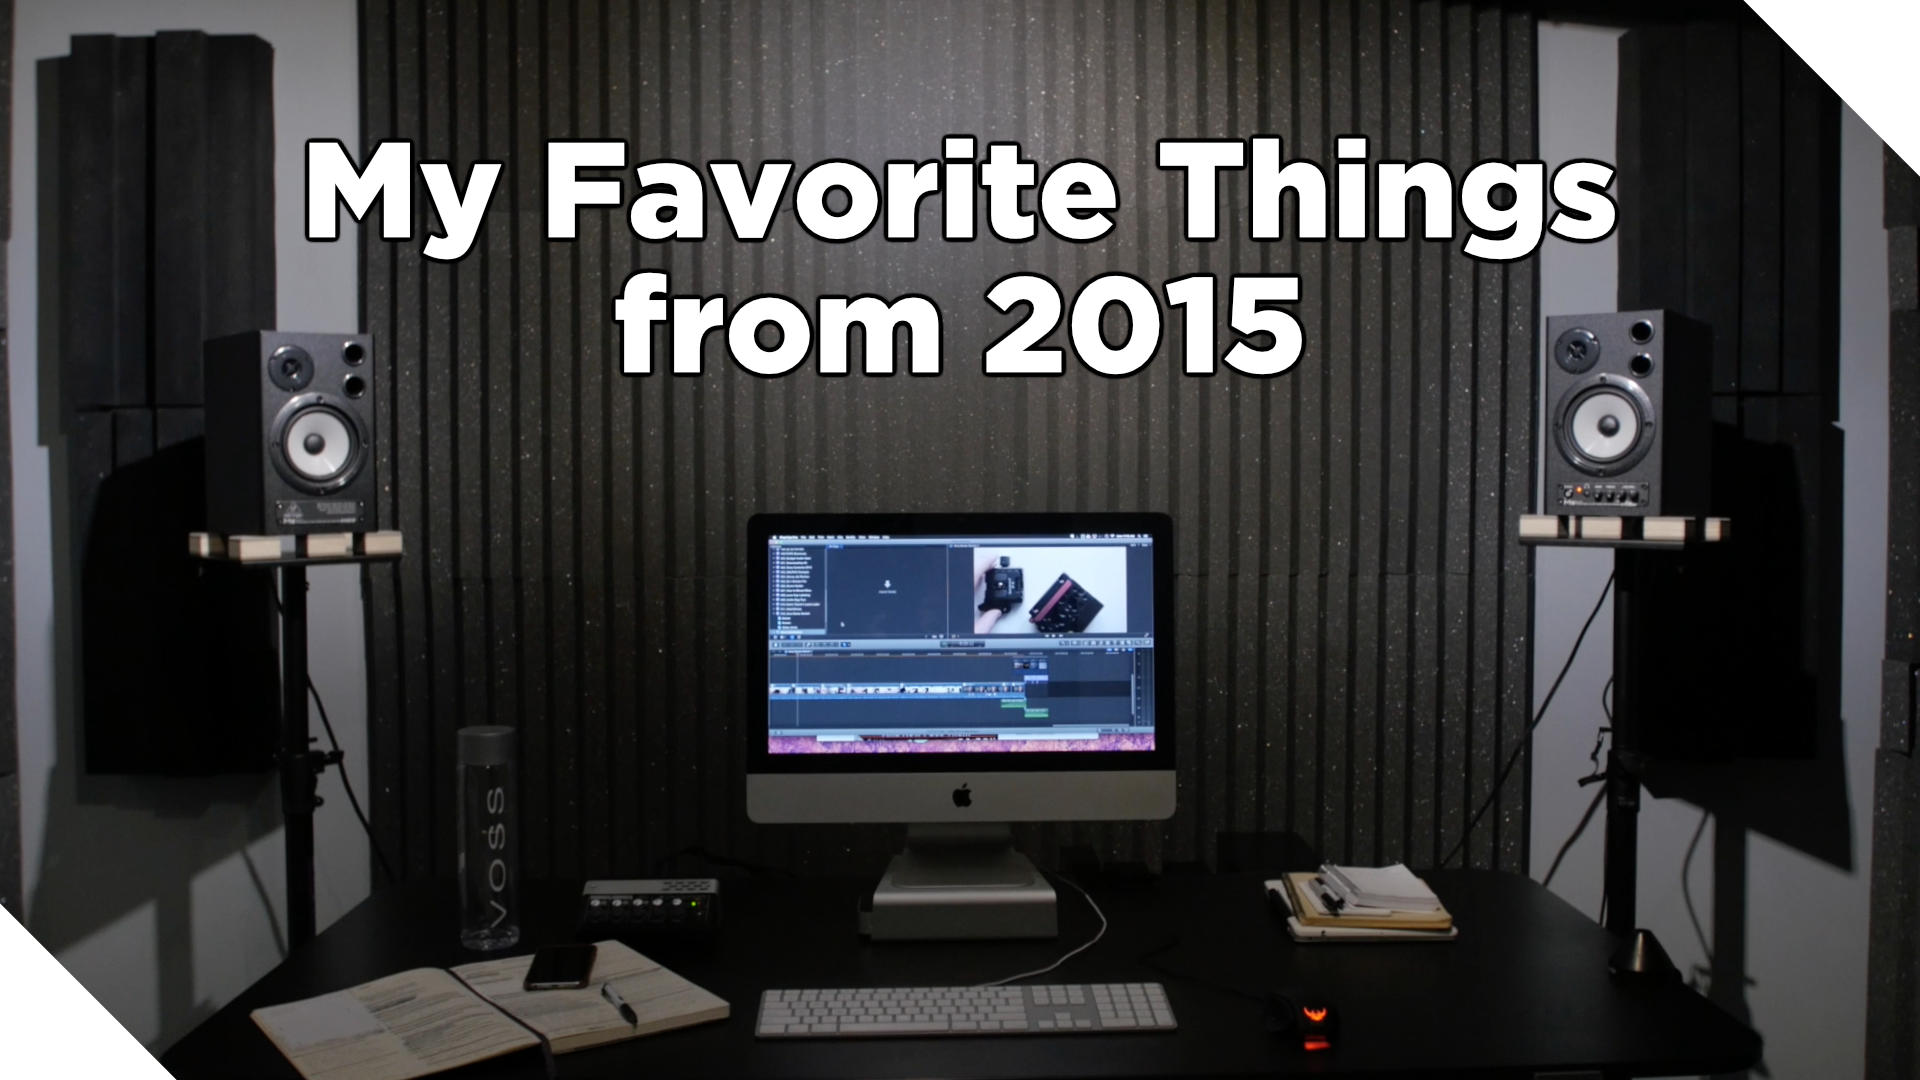 Some of My Favorite Things from 2015